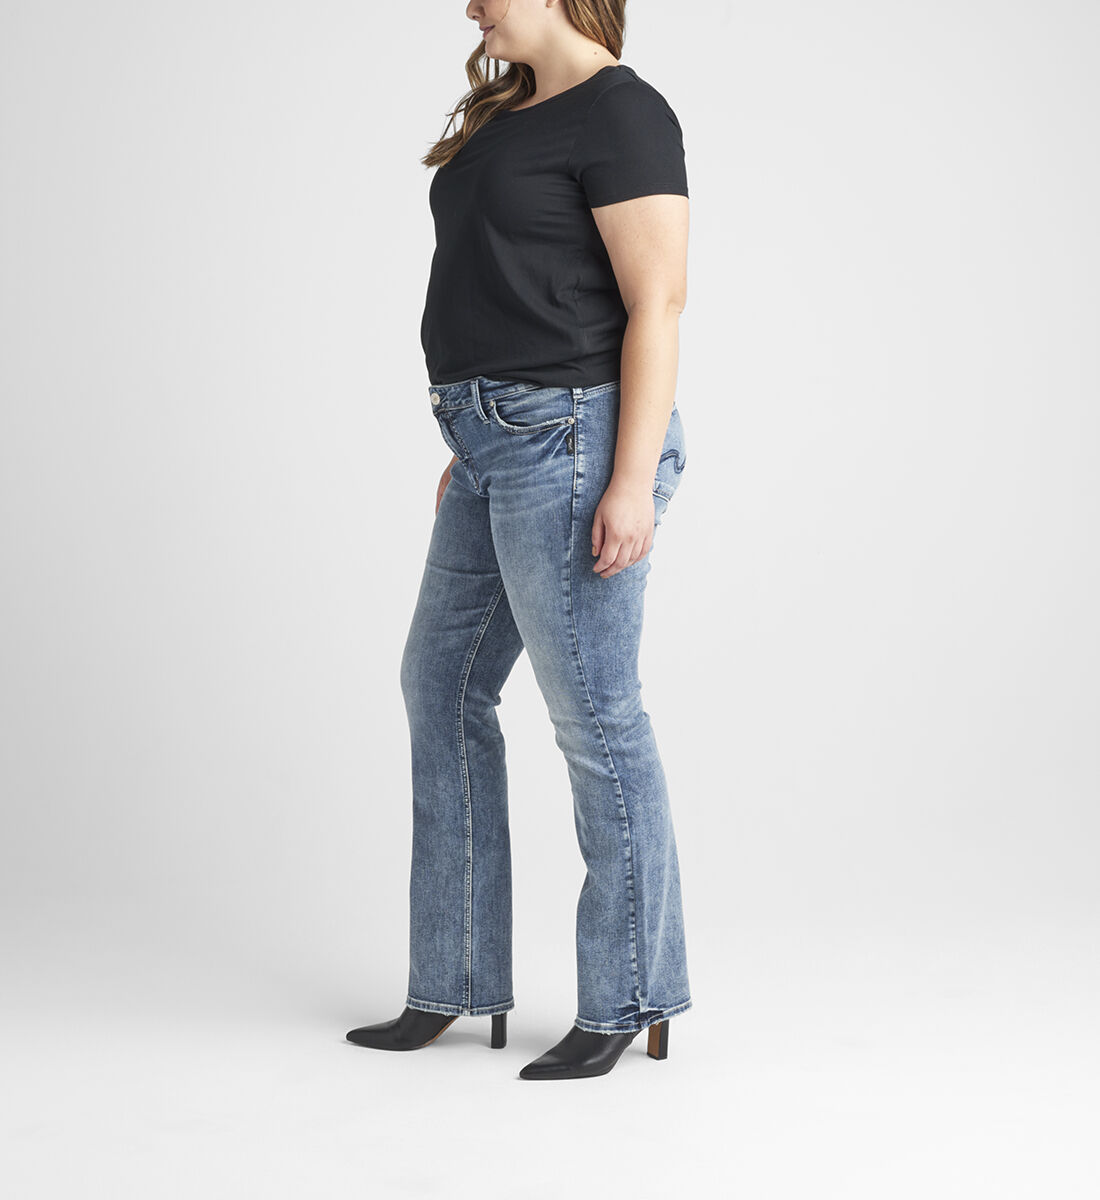 Elyse Mid Rise Slim Bootcut Jeans Plus Size Side